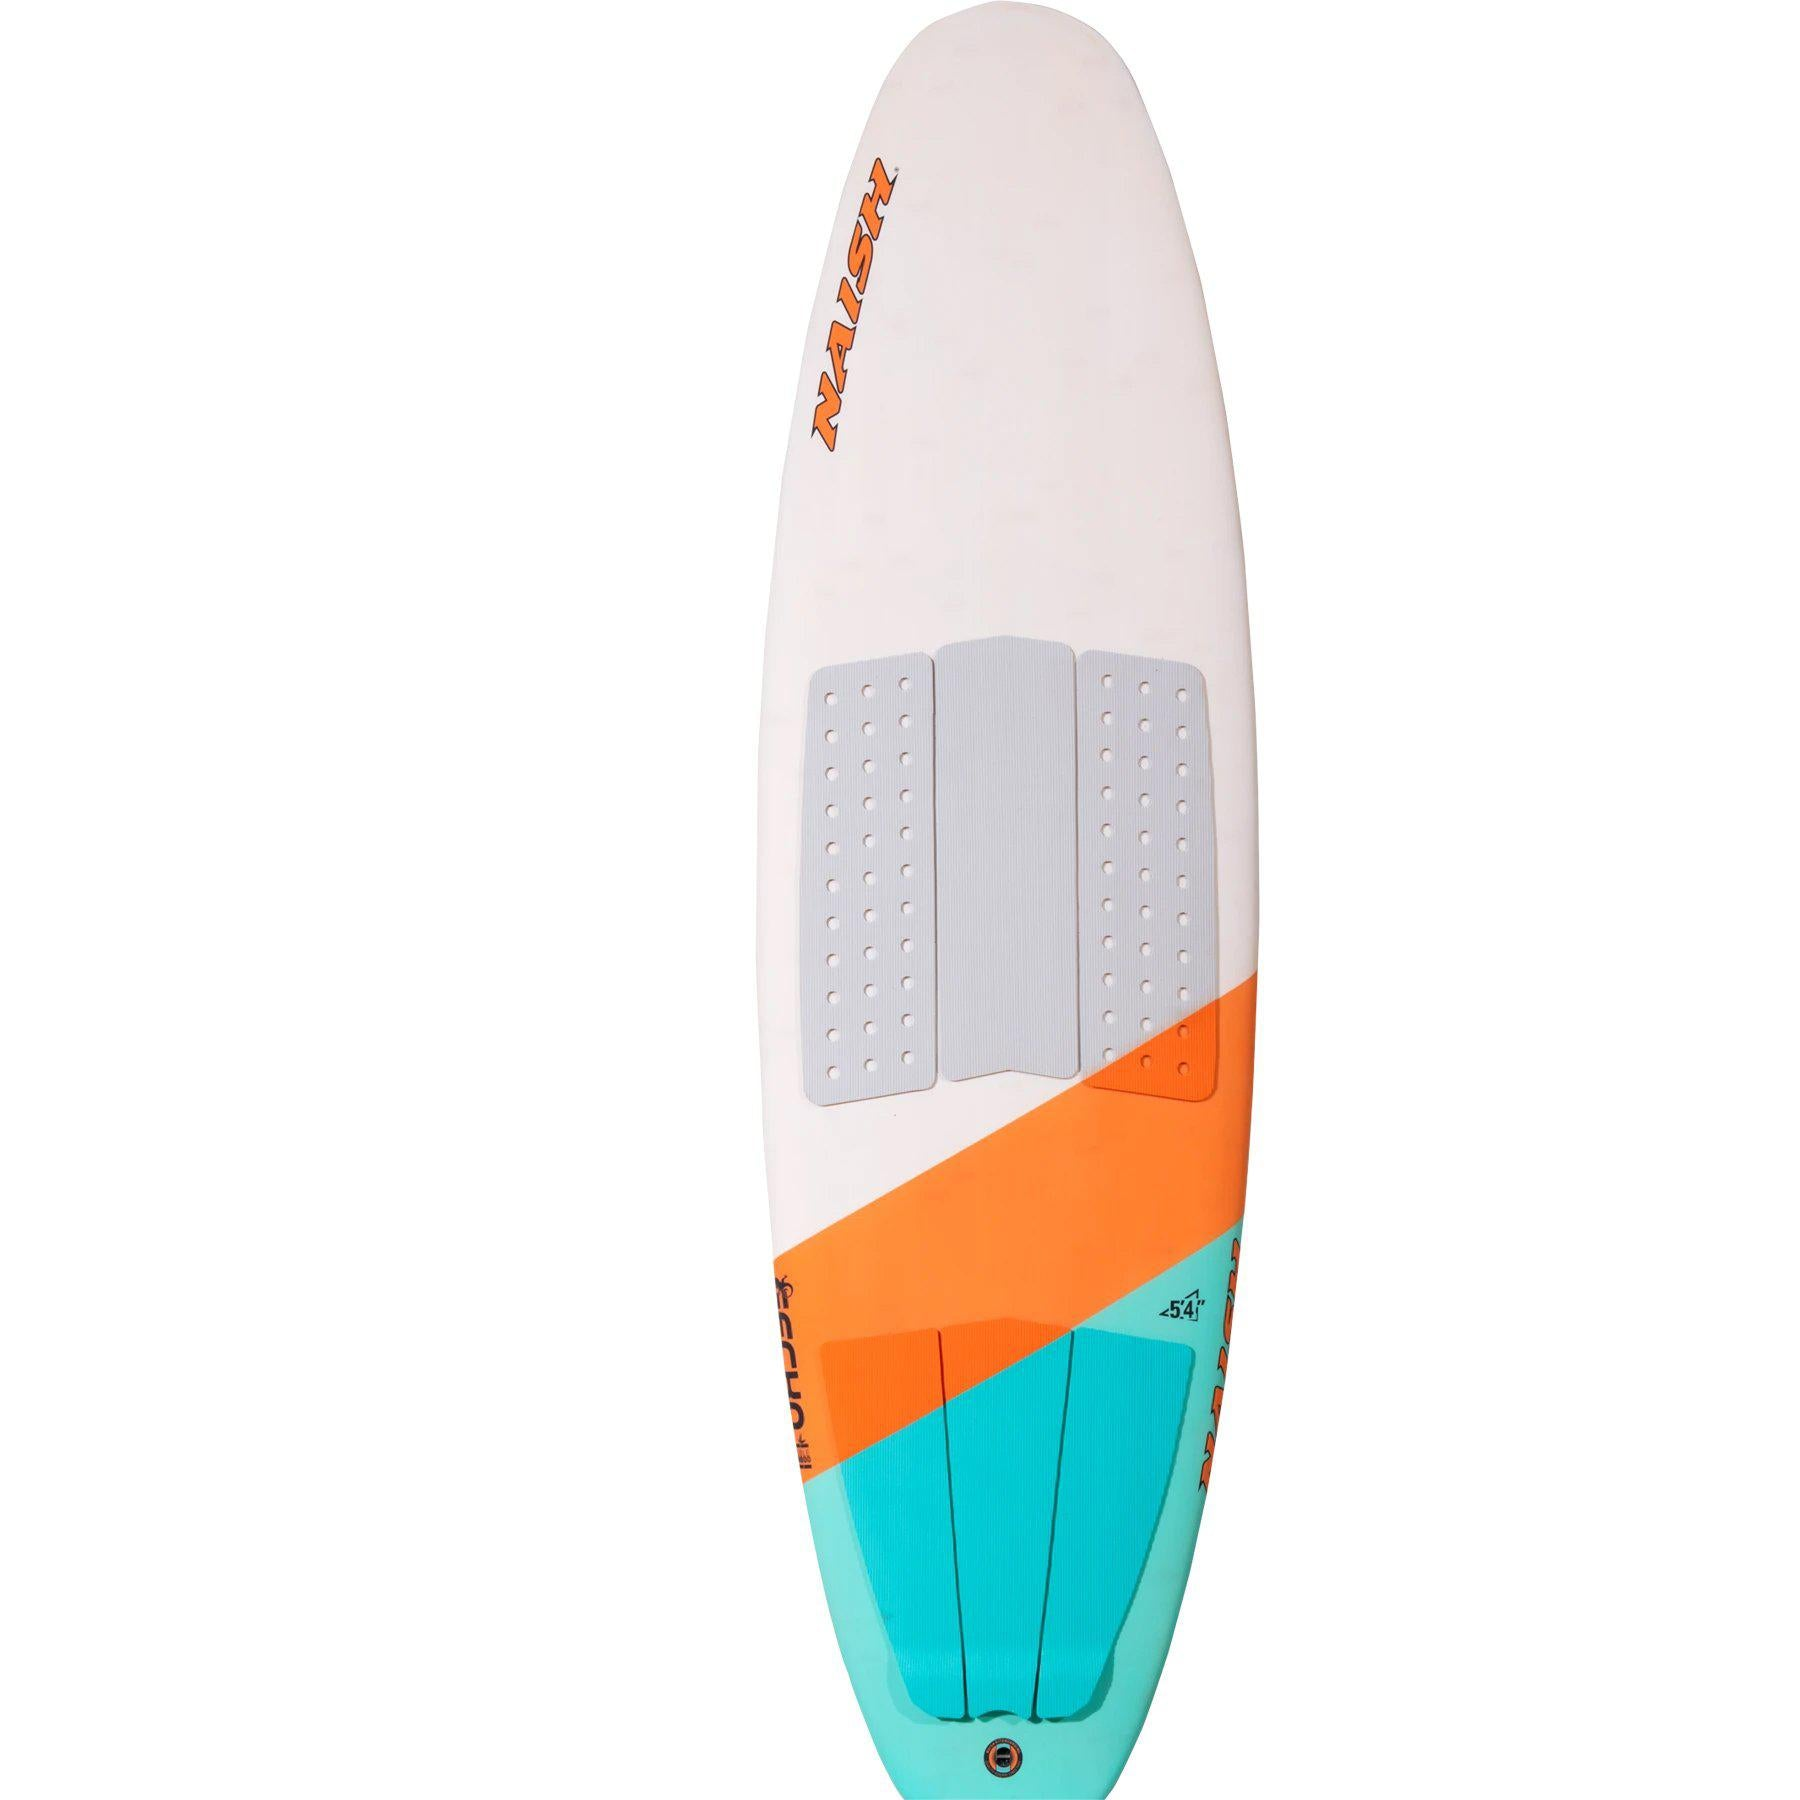 NEW 2020 NAISH S25 GECKO KITEBOARD-Big Winds